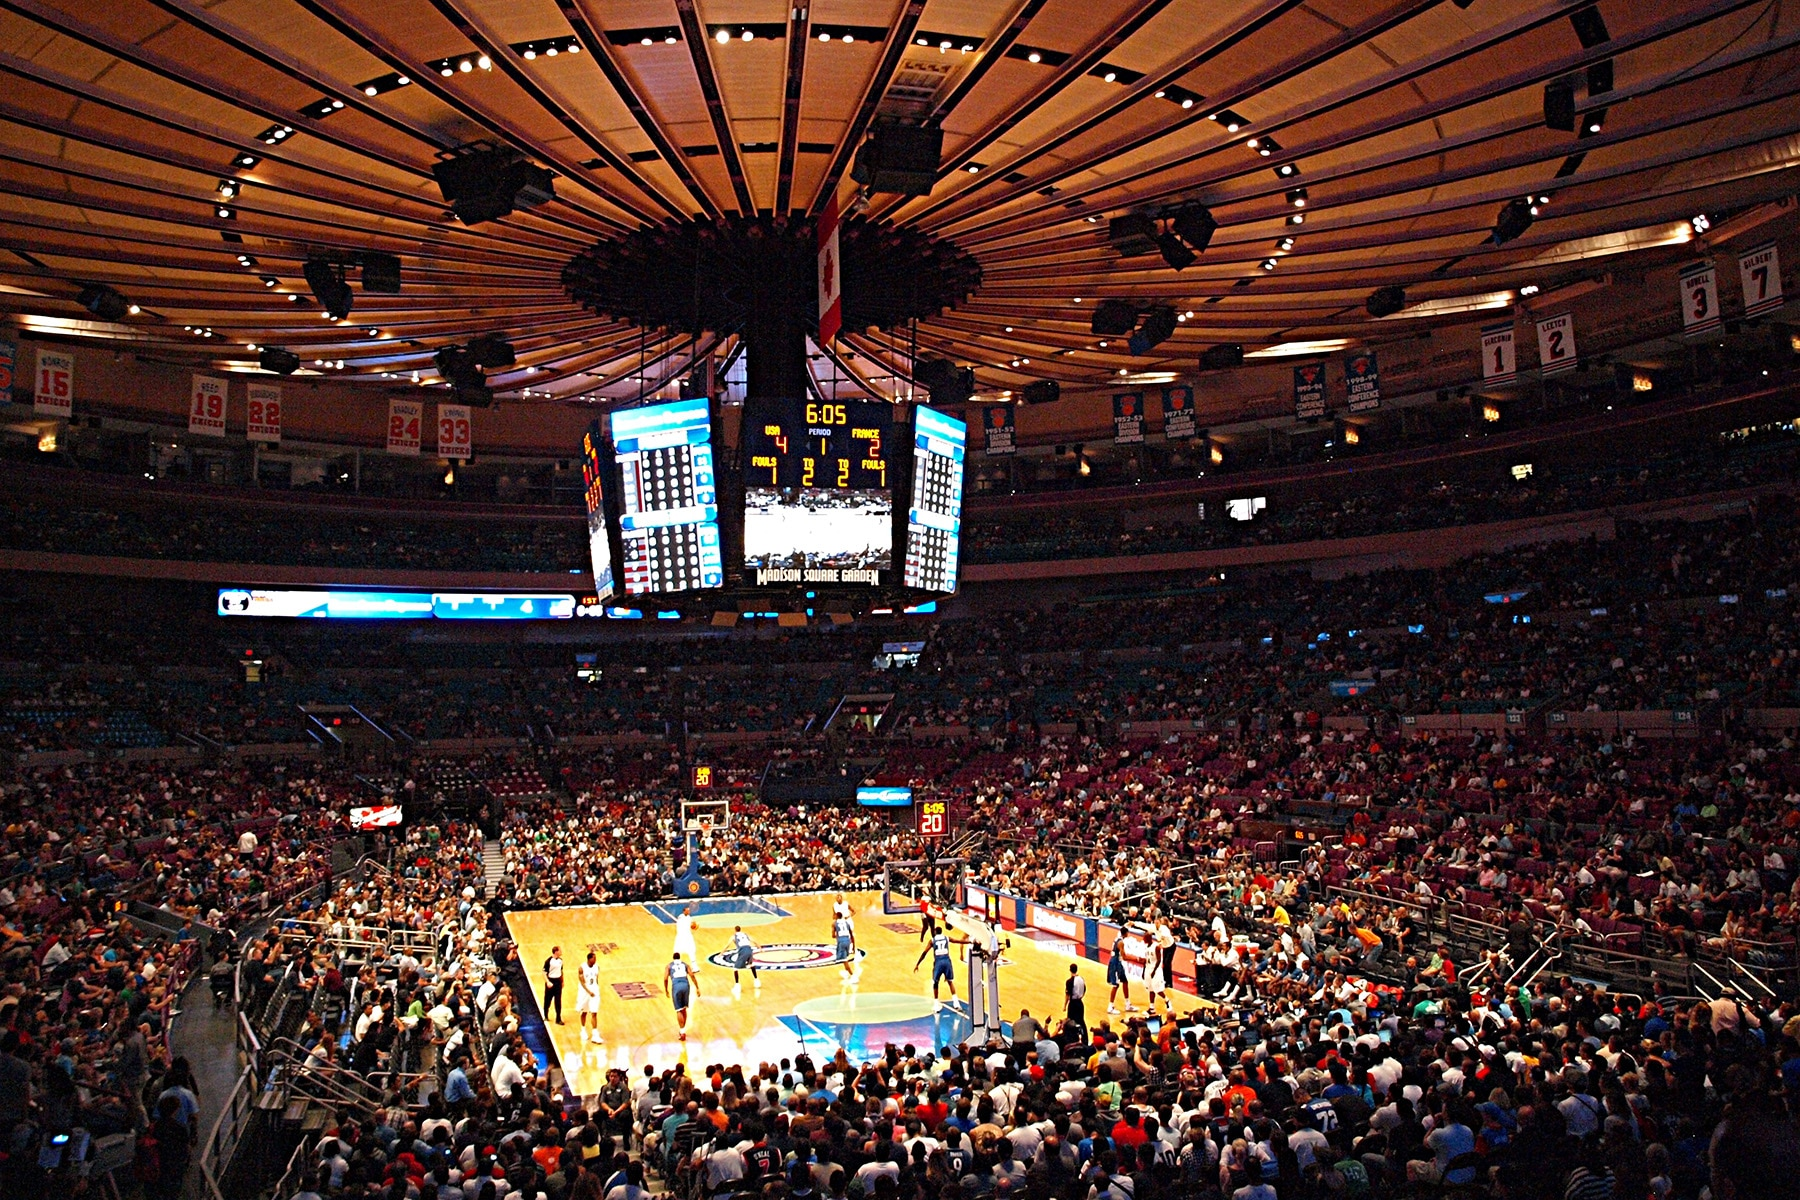 que faire à New York ? Match de NBA